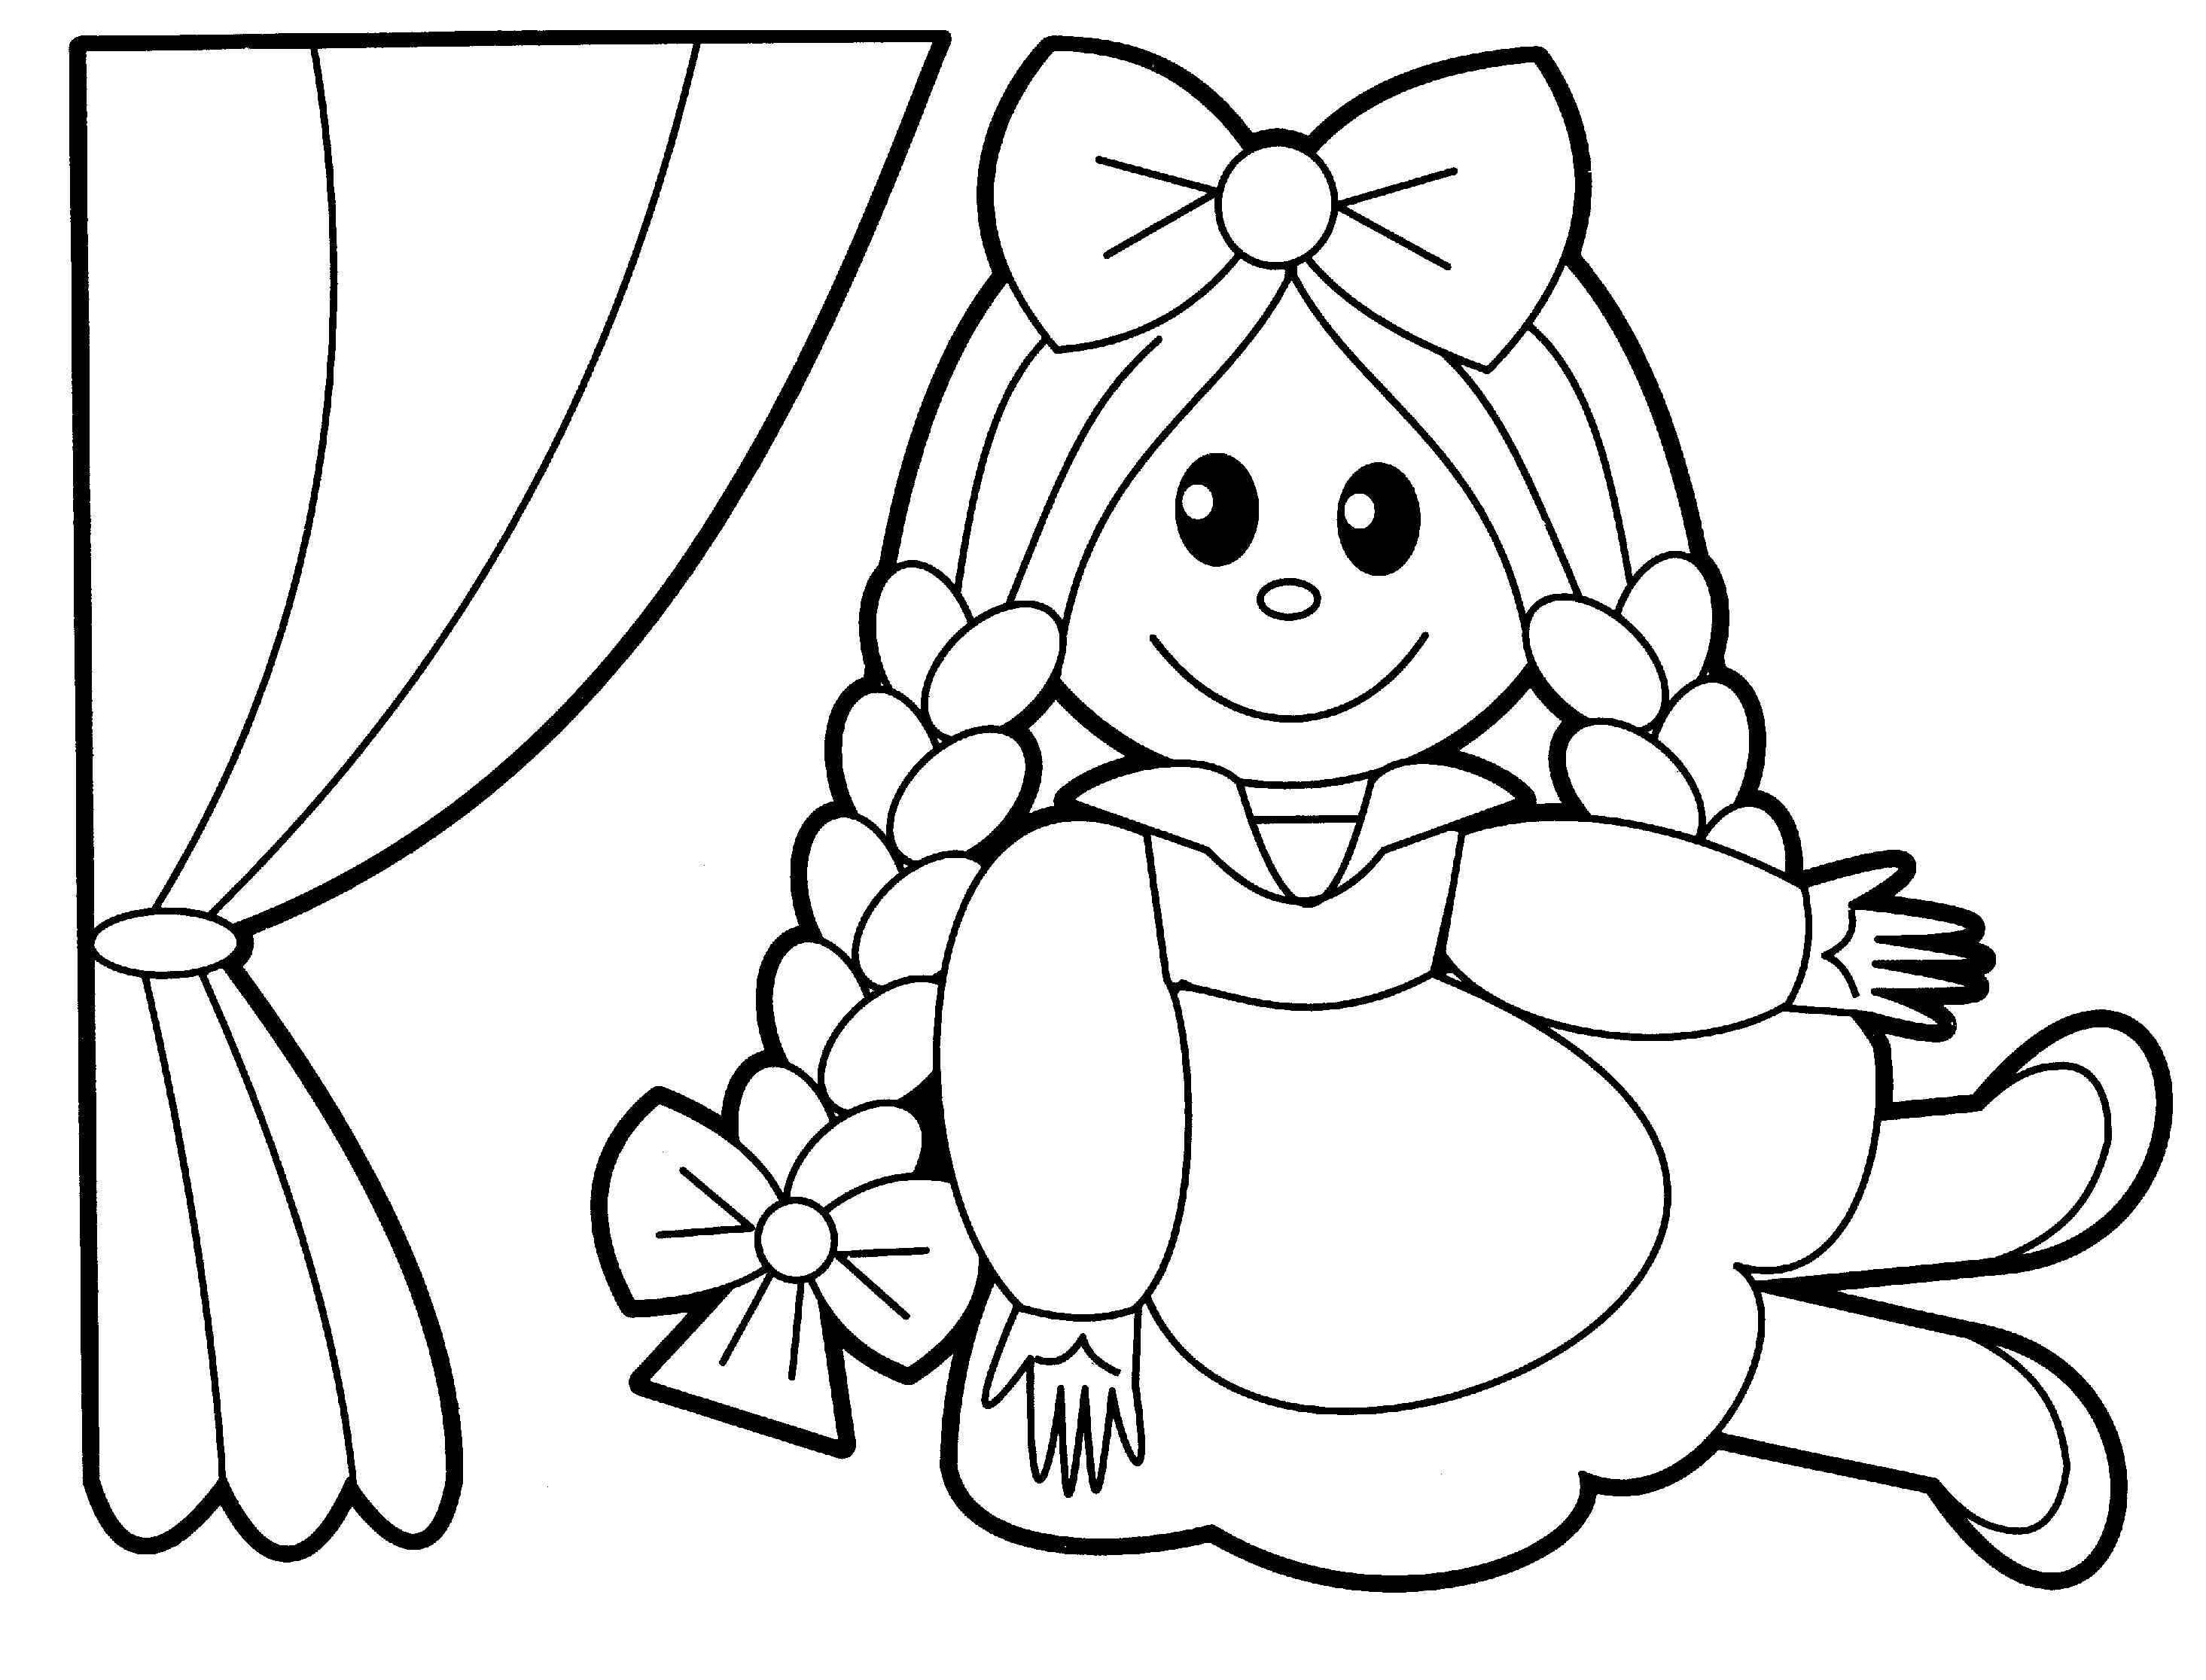 Toys Coloring Pages Best Coloring Pages For Kids